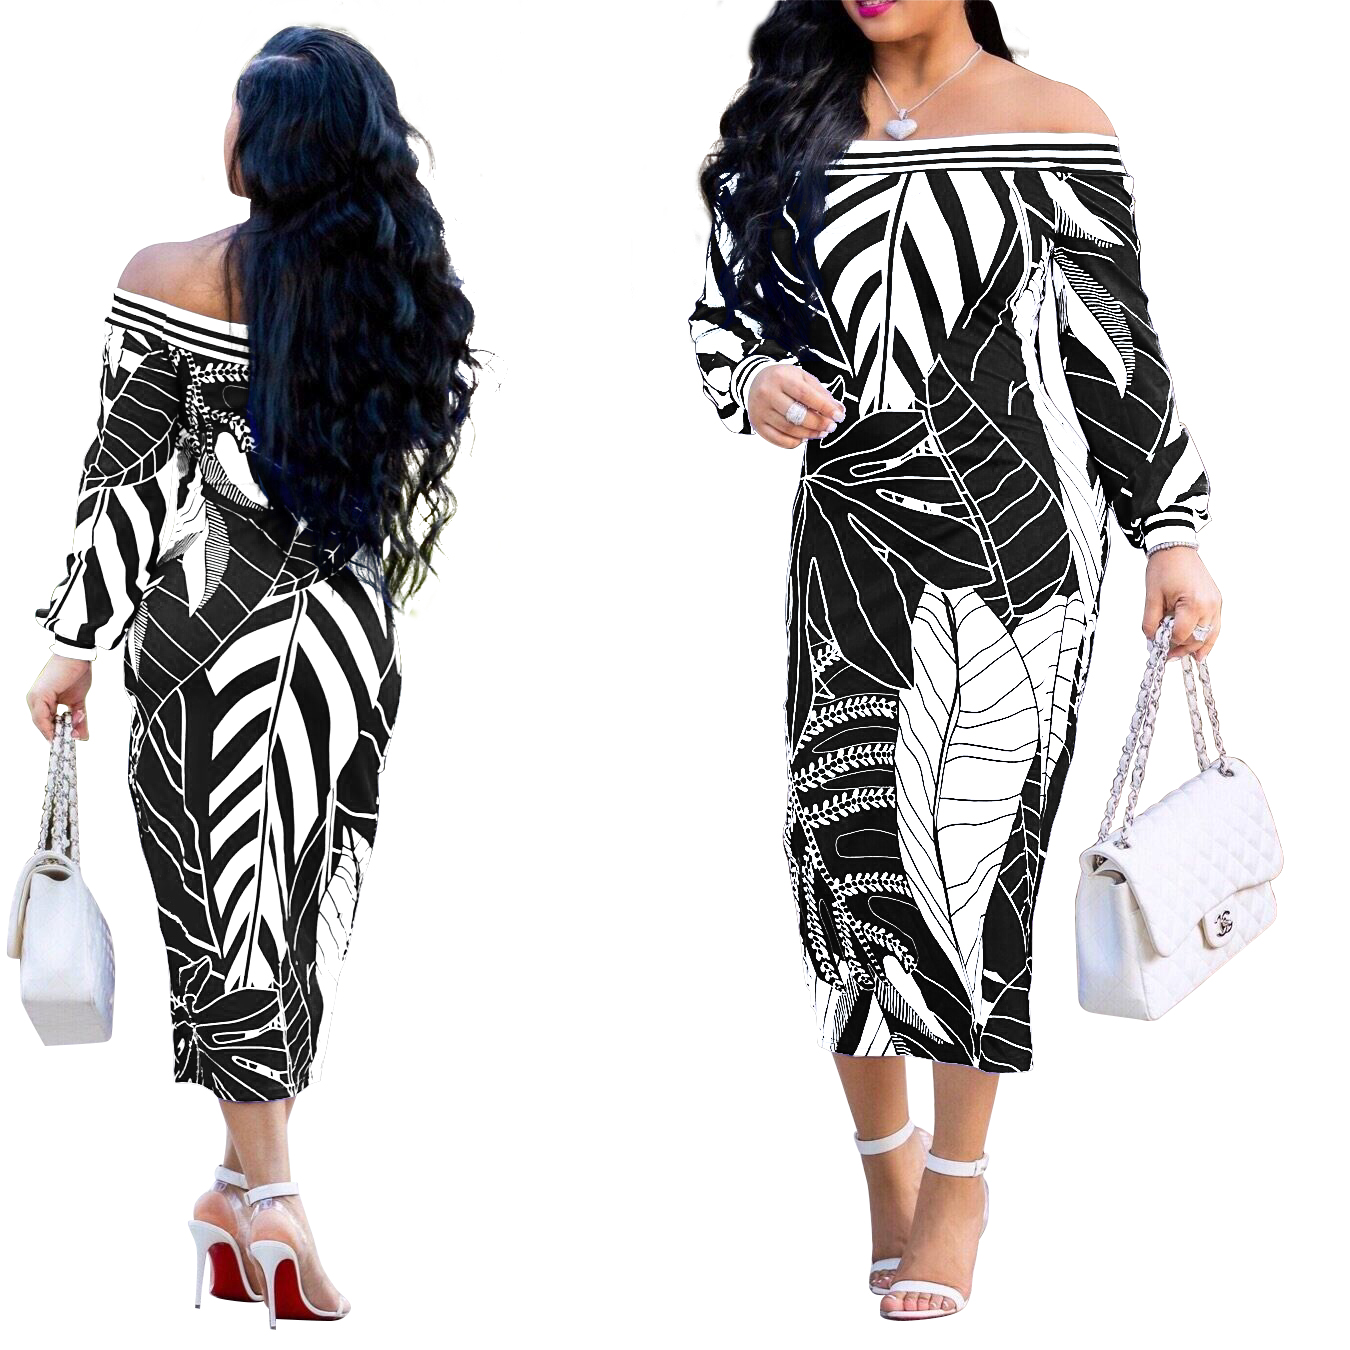 2019 new listing fashion European and American sexy women's printed wrap dress